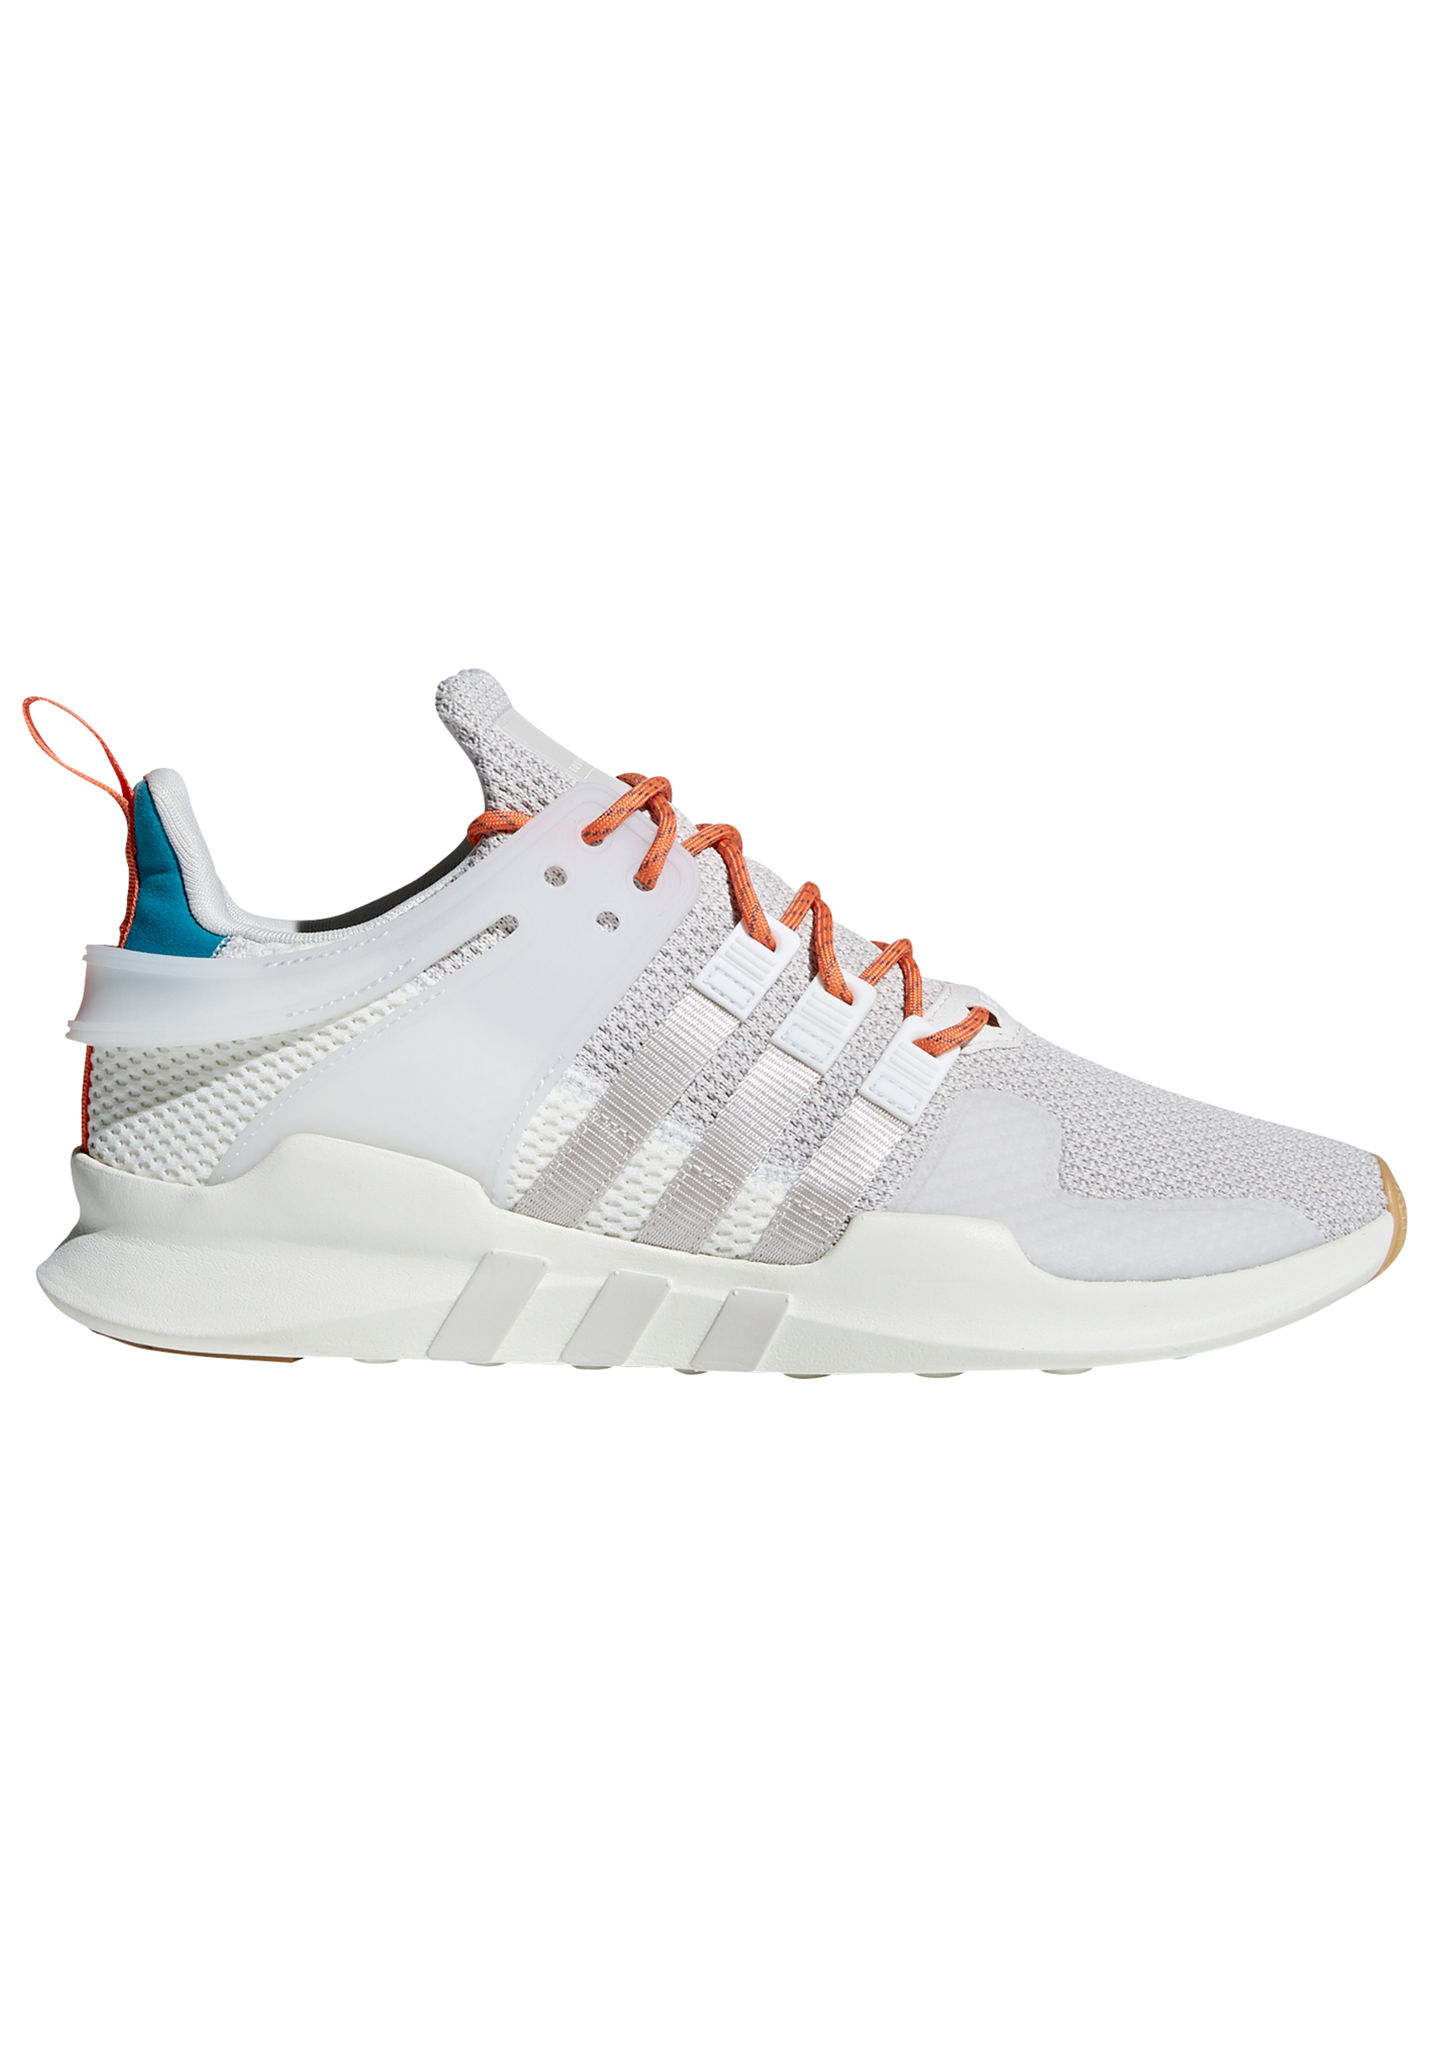 low priced 8c07f 87502 ADIDAS ORIGINALS Eqt Support Adv Summer - Sneakers for Men - White - Planet  Sports